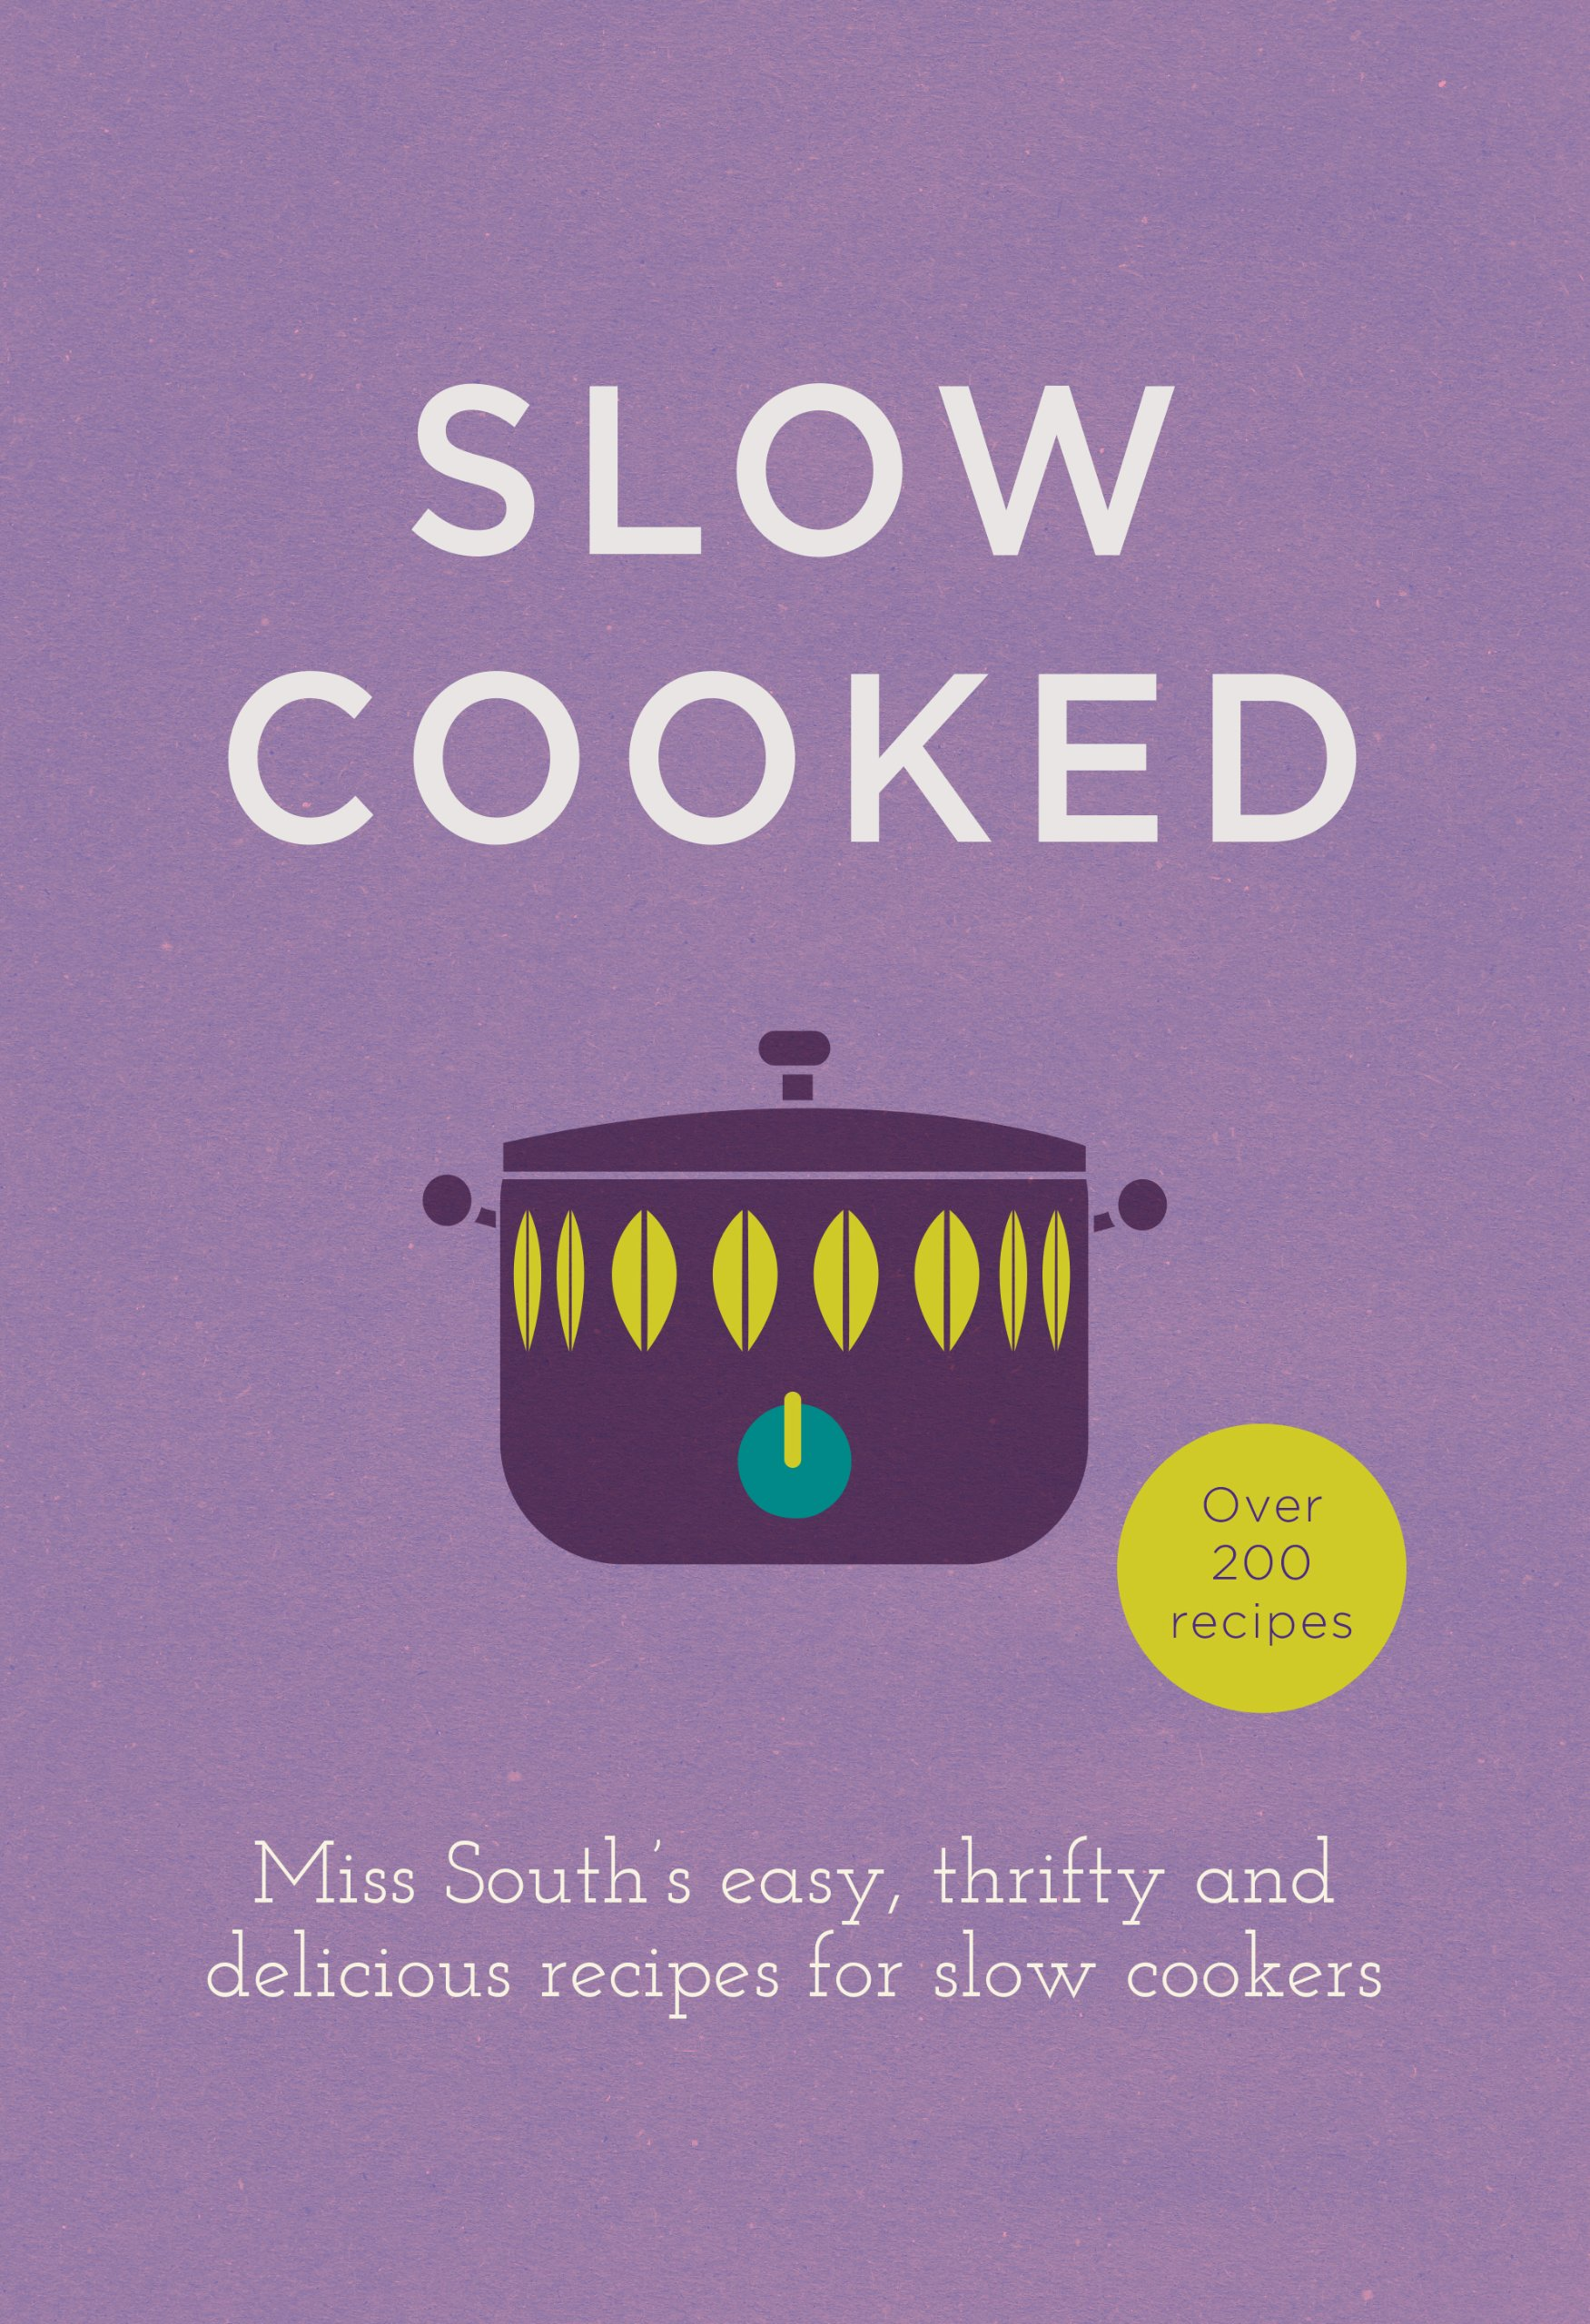 Slow Cooked: Miss Souths Easy, Thrifty and Delicious Recipes for Slow Cookers Hardcover – September 1, 2015